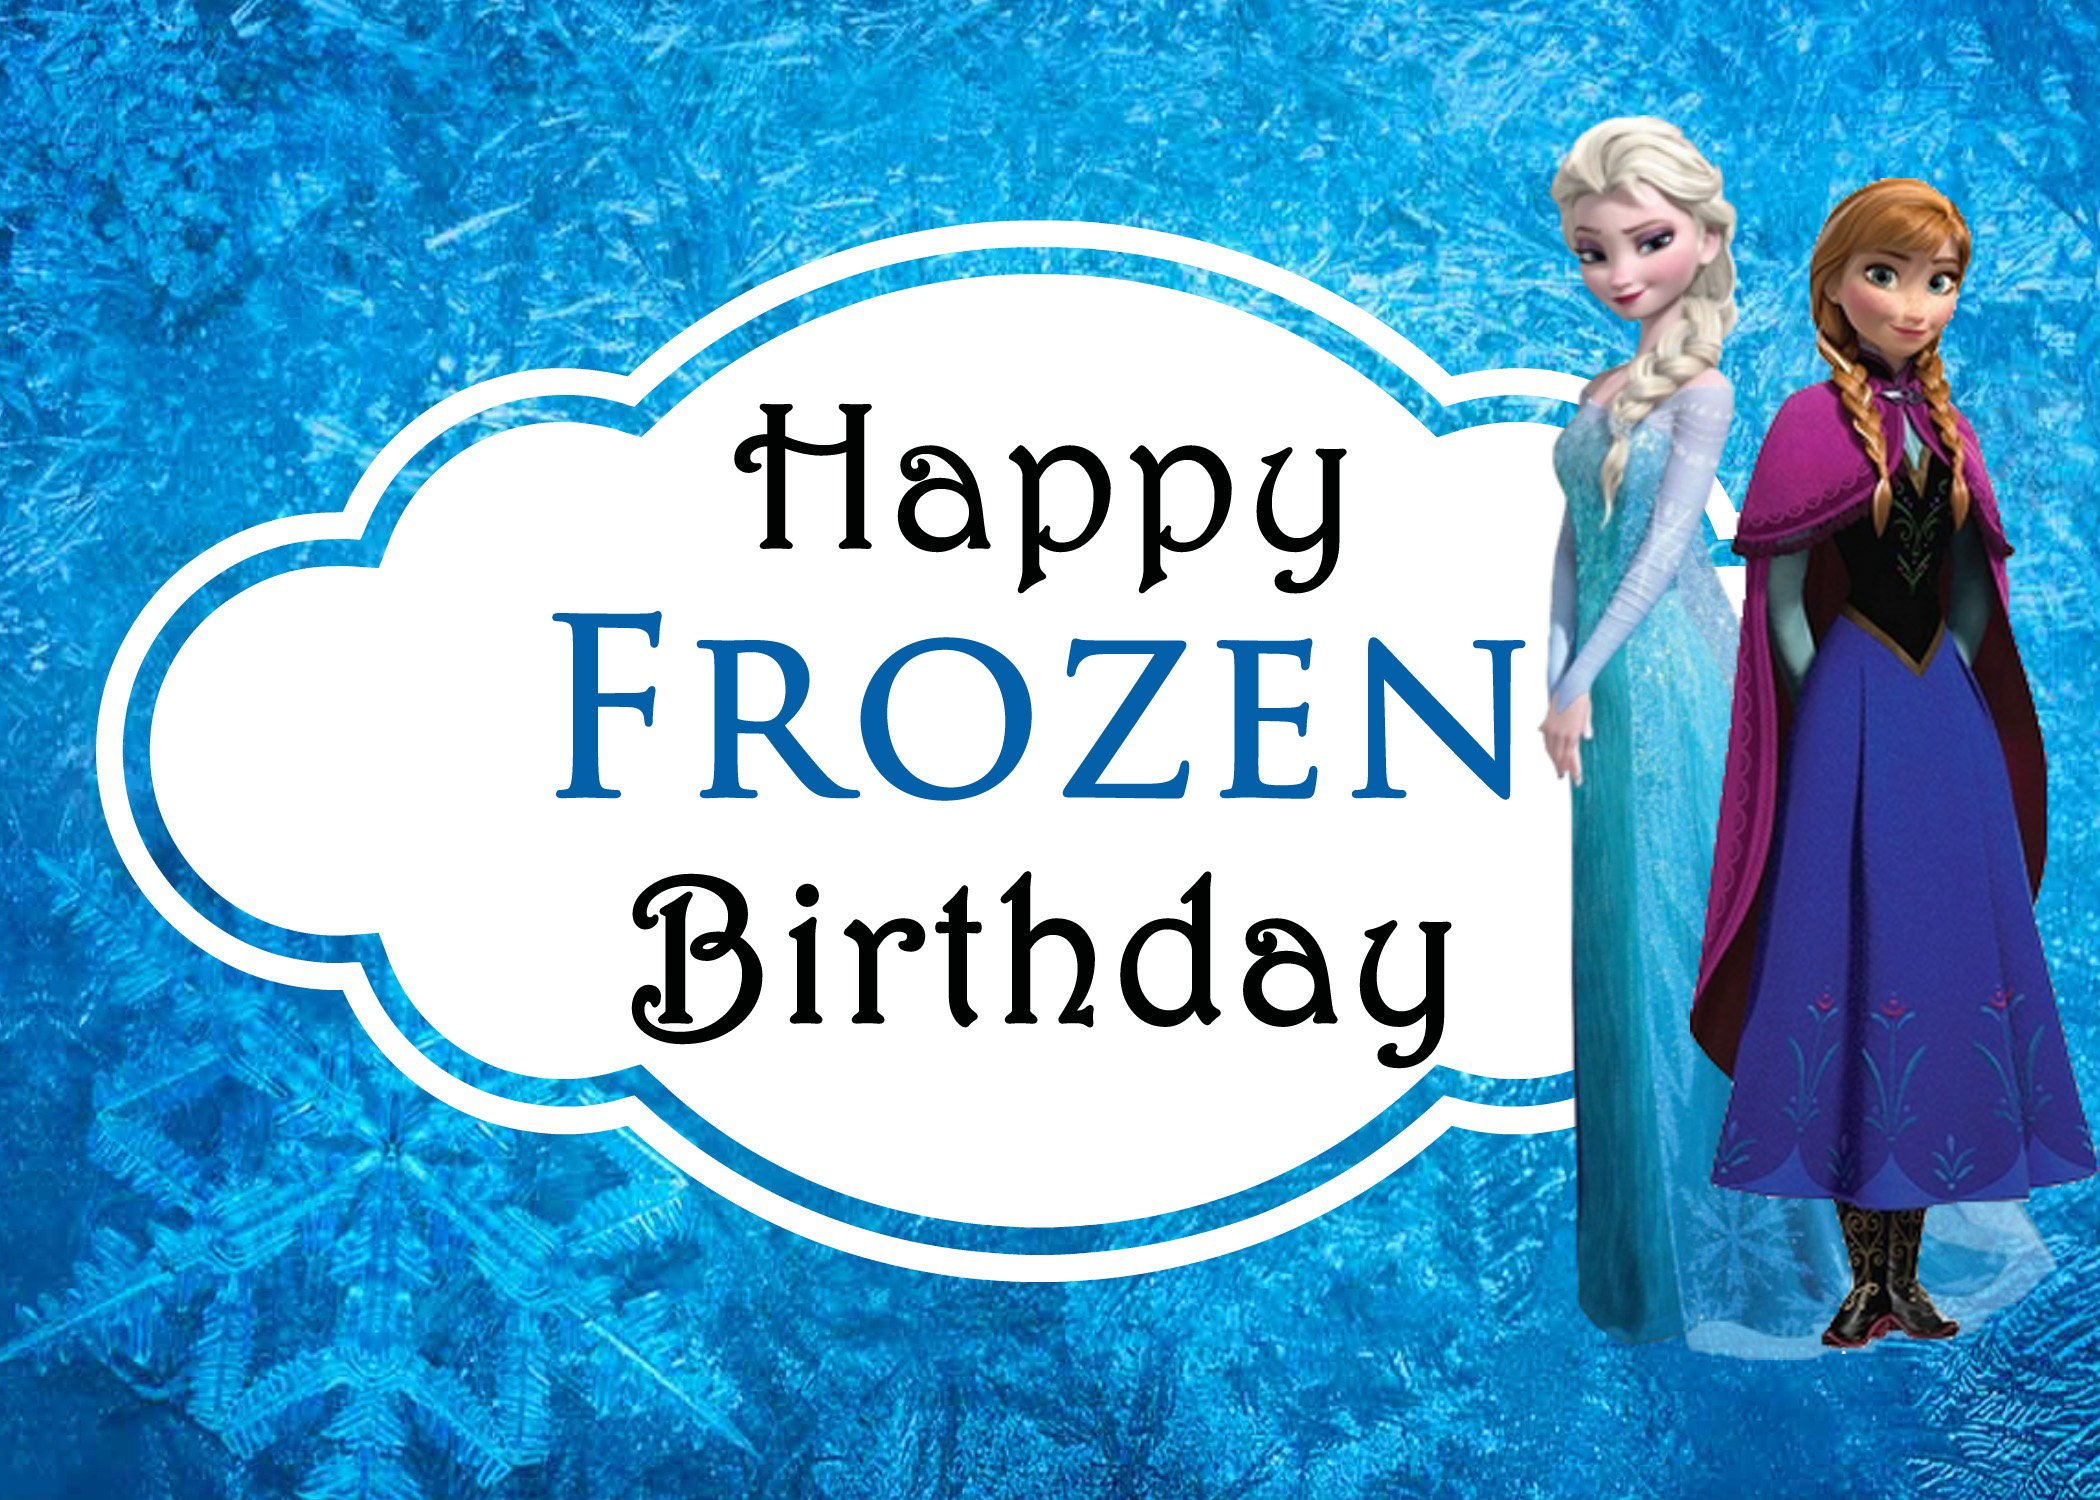 photograph relating to Frozen Free Printable identify Celebrating Sisters With Disneys Frozen + No cost Printable